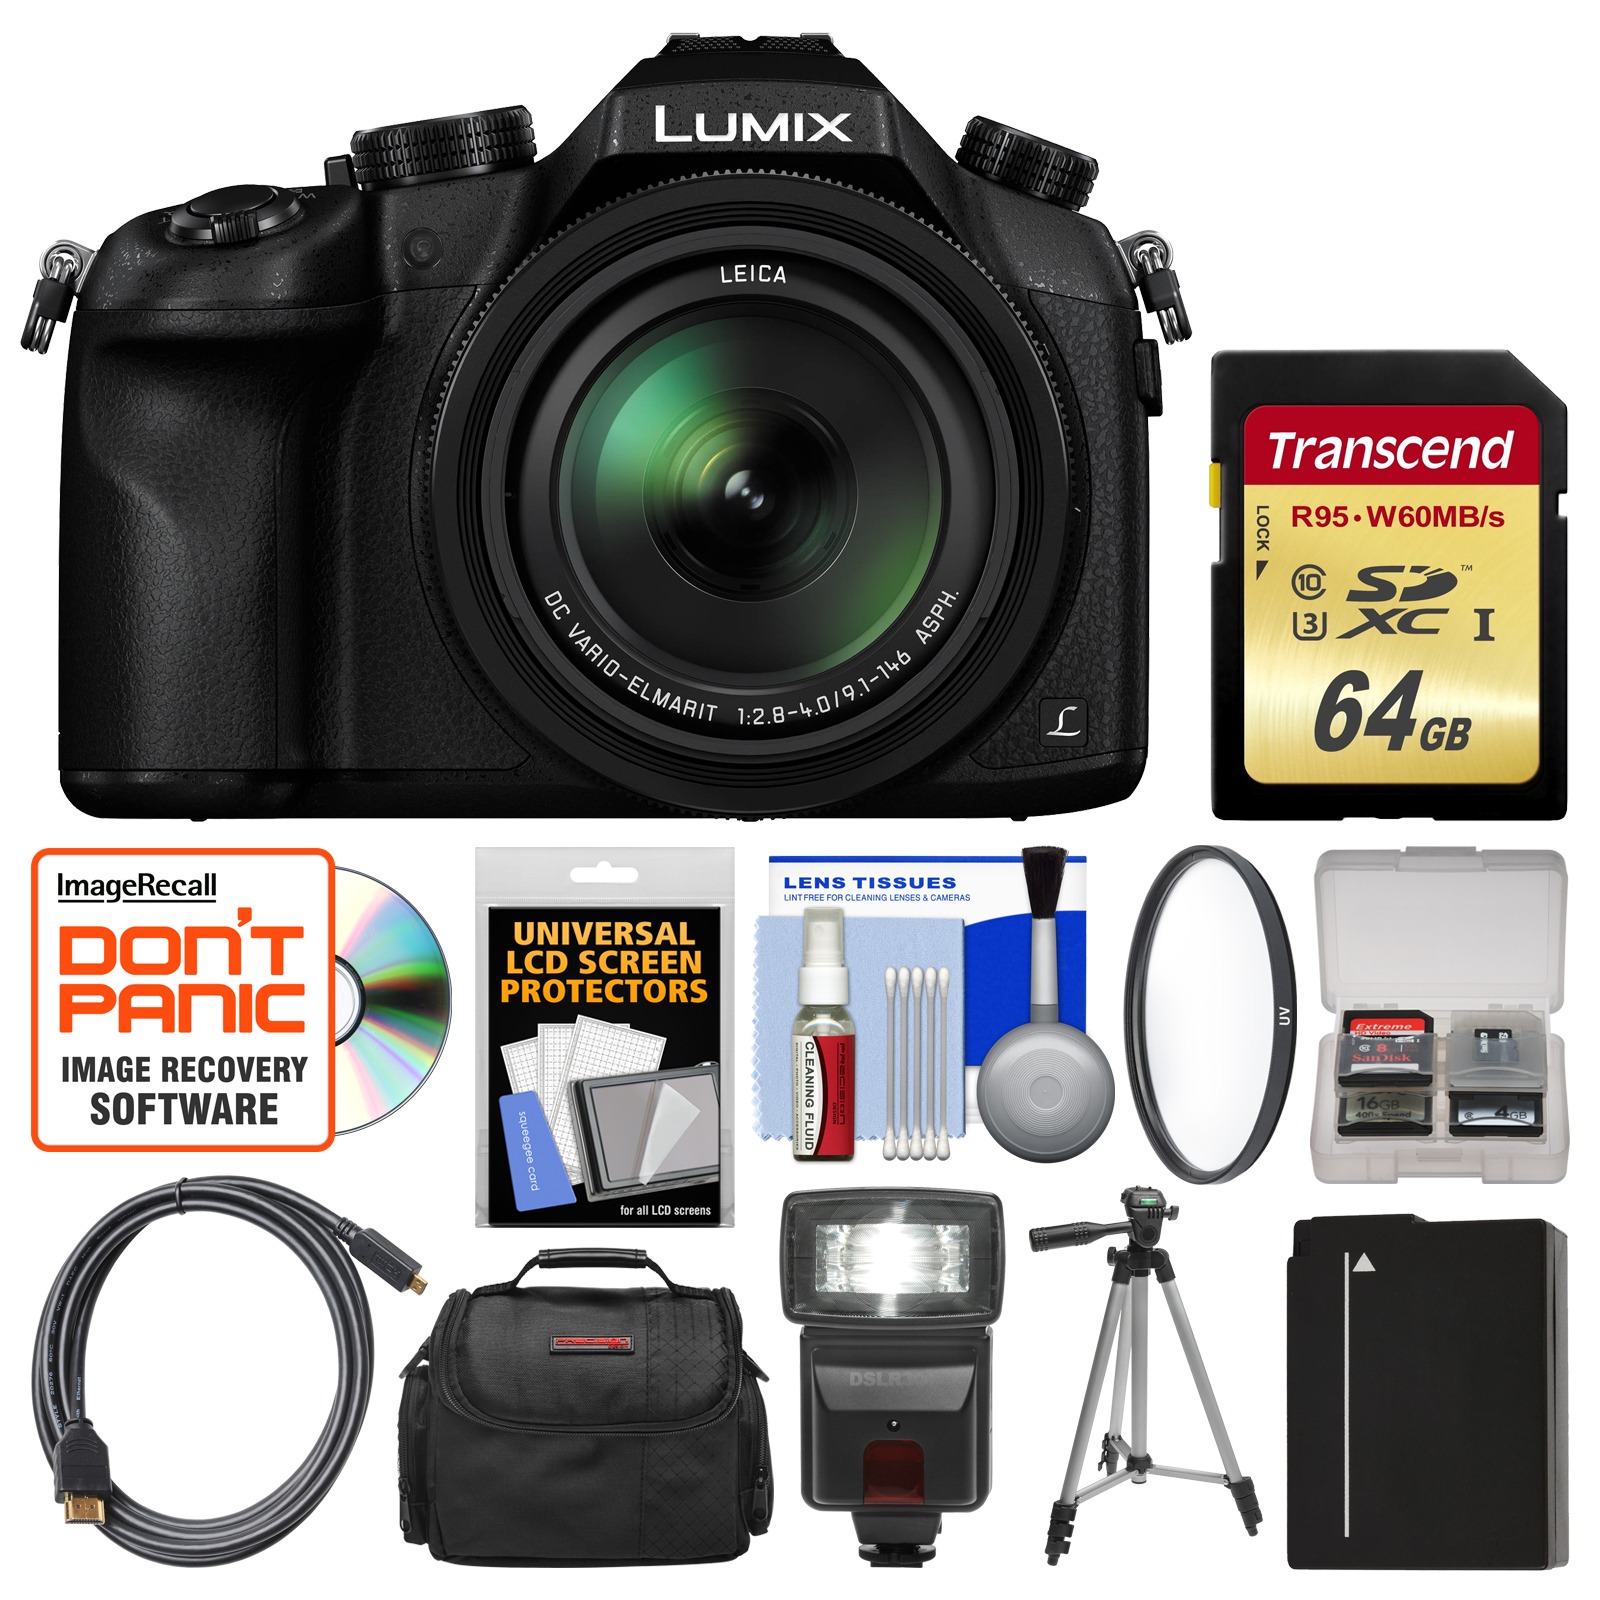 Panasonic Lumix DMC-FZ1000 4K QFHD Wi-Fi Digital Camera with 64GB Card + Case + Flash + Battery + Tripod + Filter + Kit